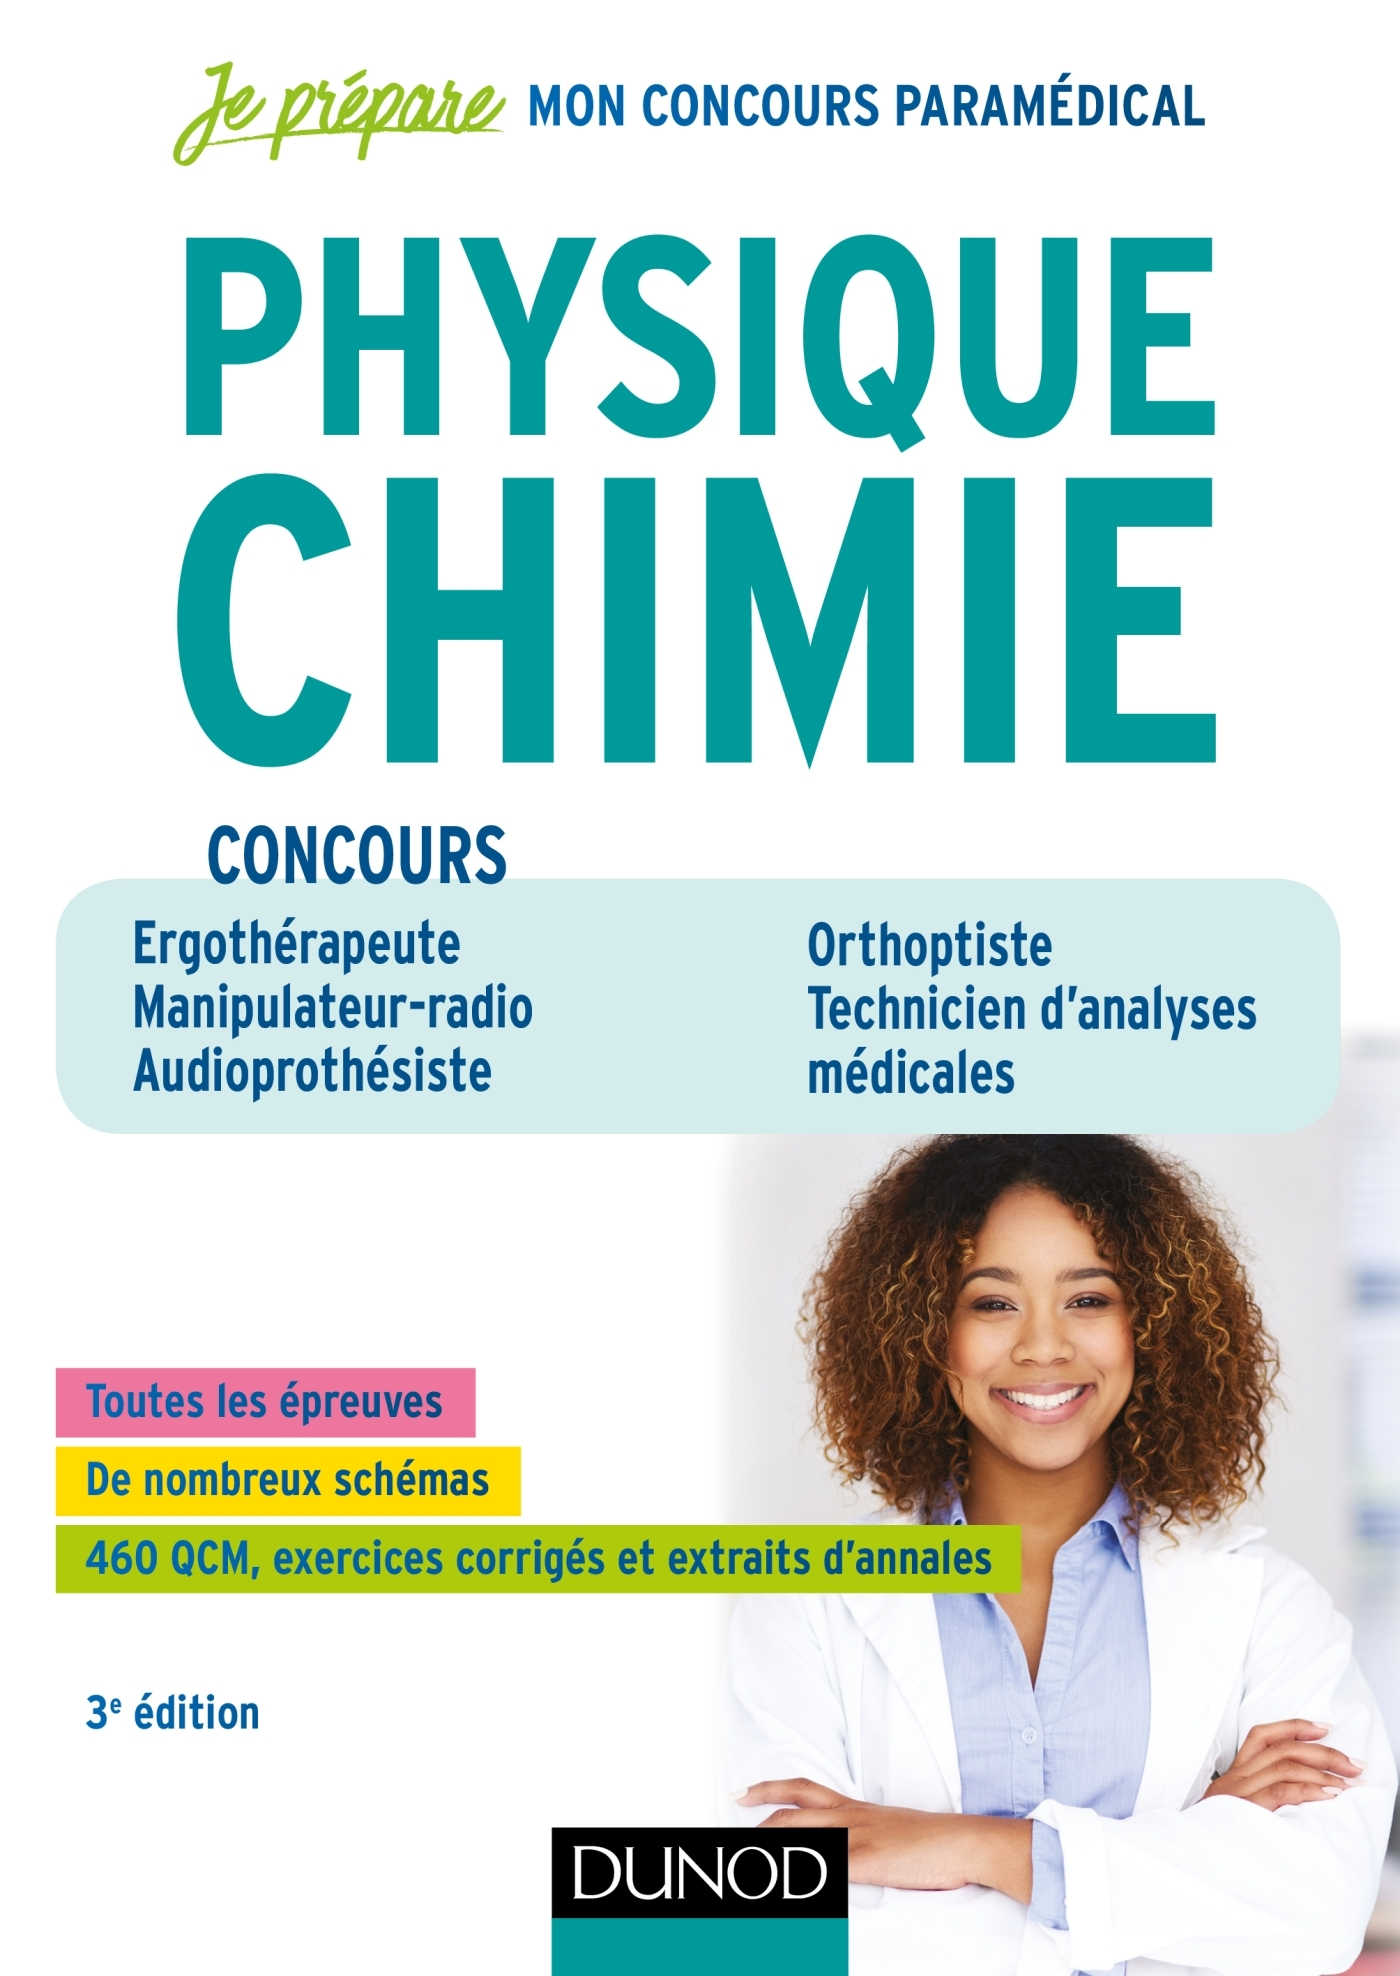 PHYSIQUE CHIMIE - 3E ED - CONCOURS ERGOTHERAPEUTE, MANIPULATEUR RADIO, AUDIOPROTHESISTE